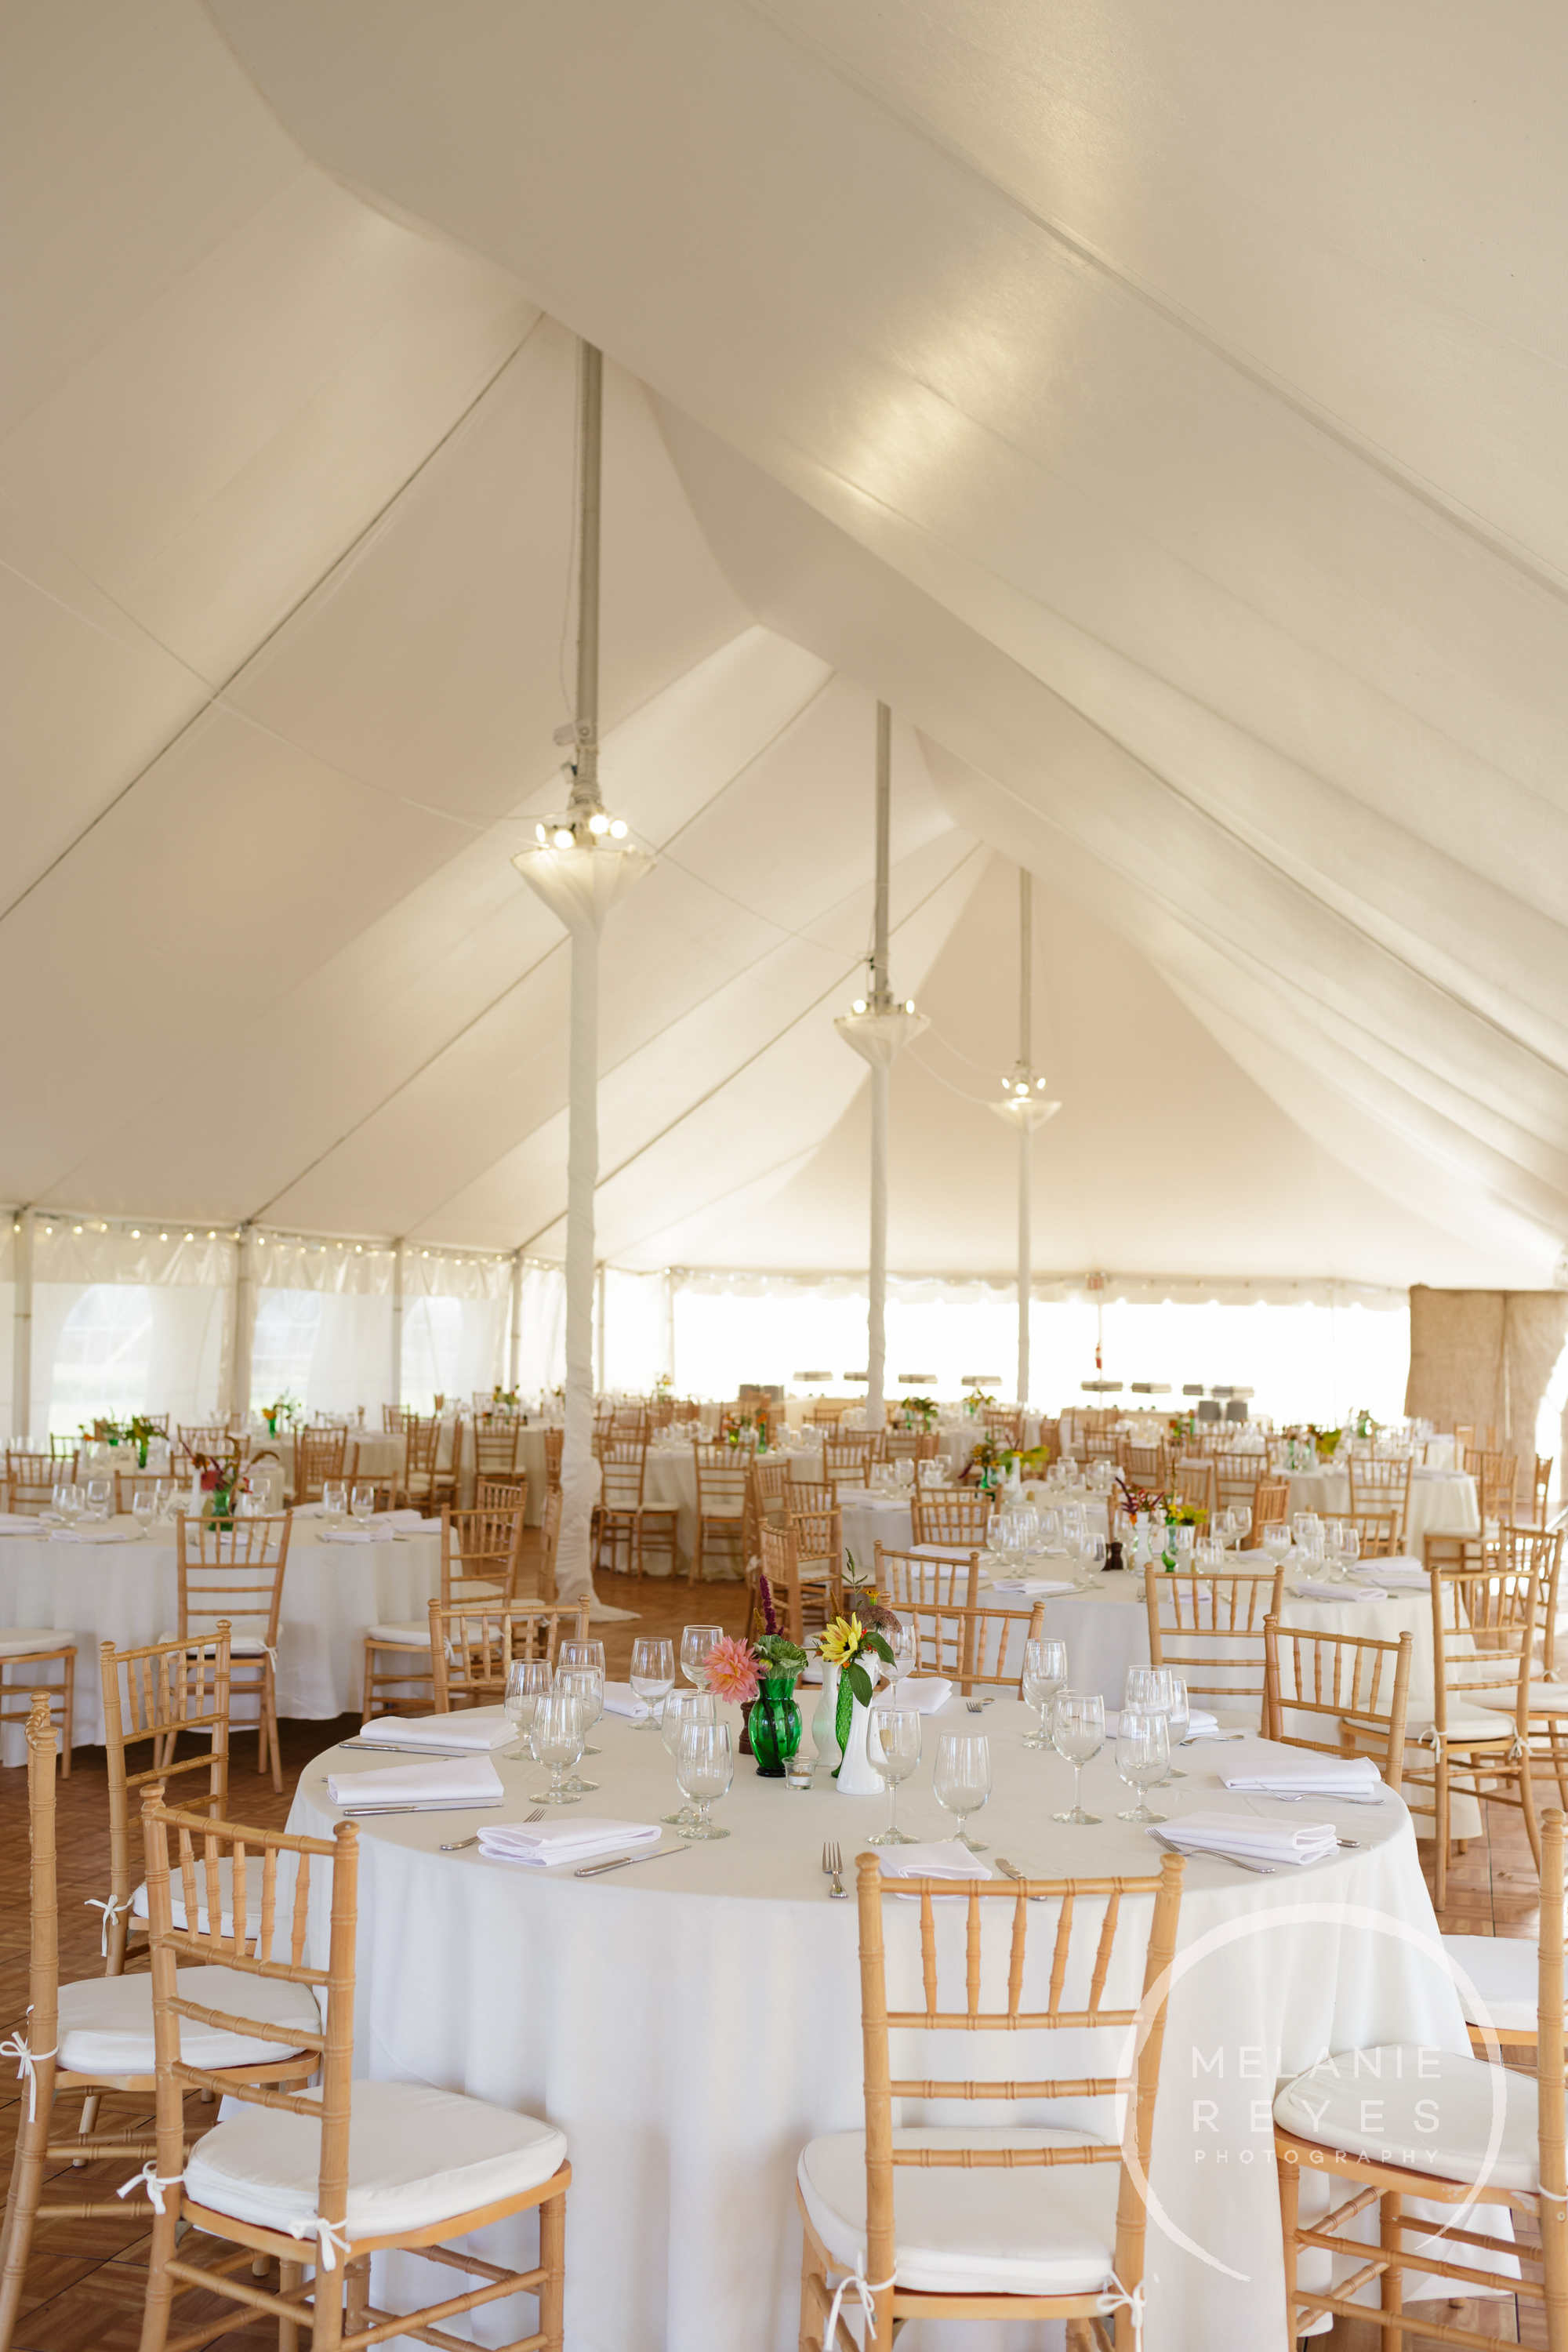 zingermans_cornman_farms_wedding_melanie_reyes_photography_013.JPG